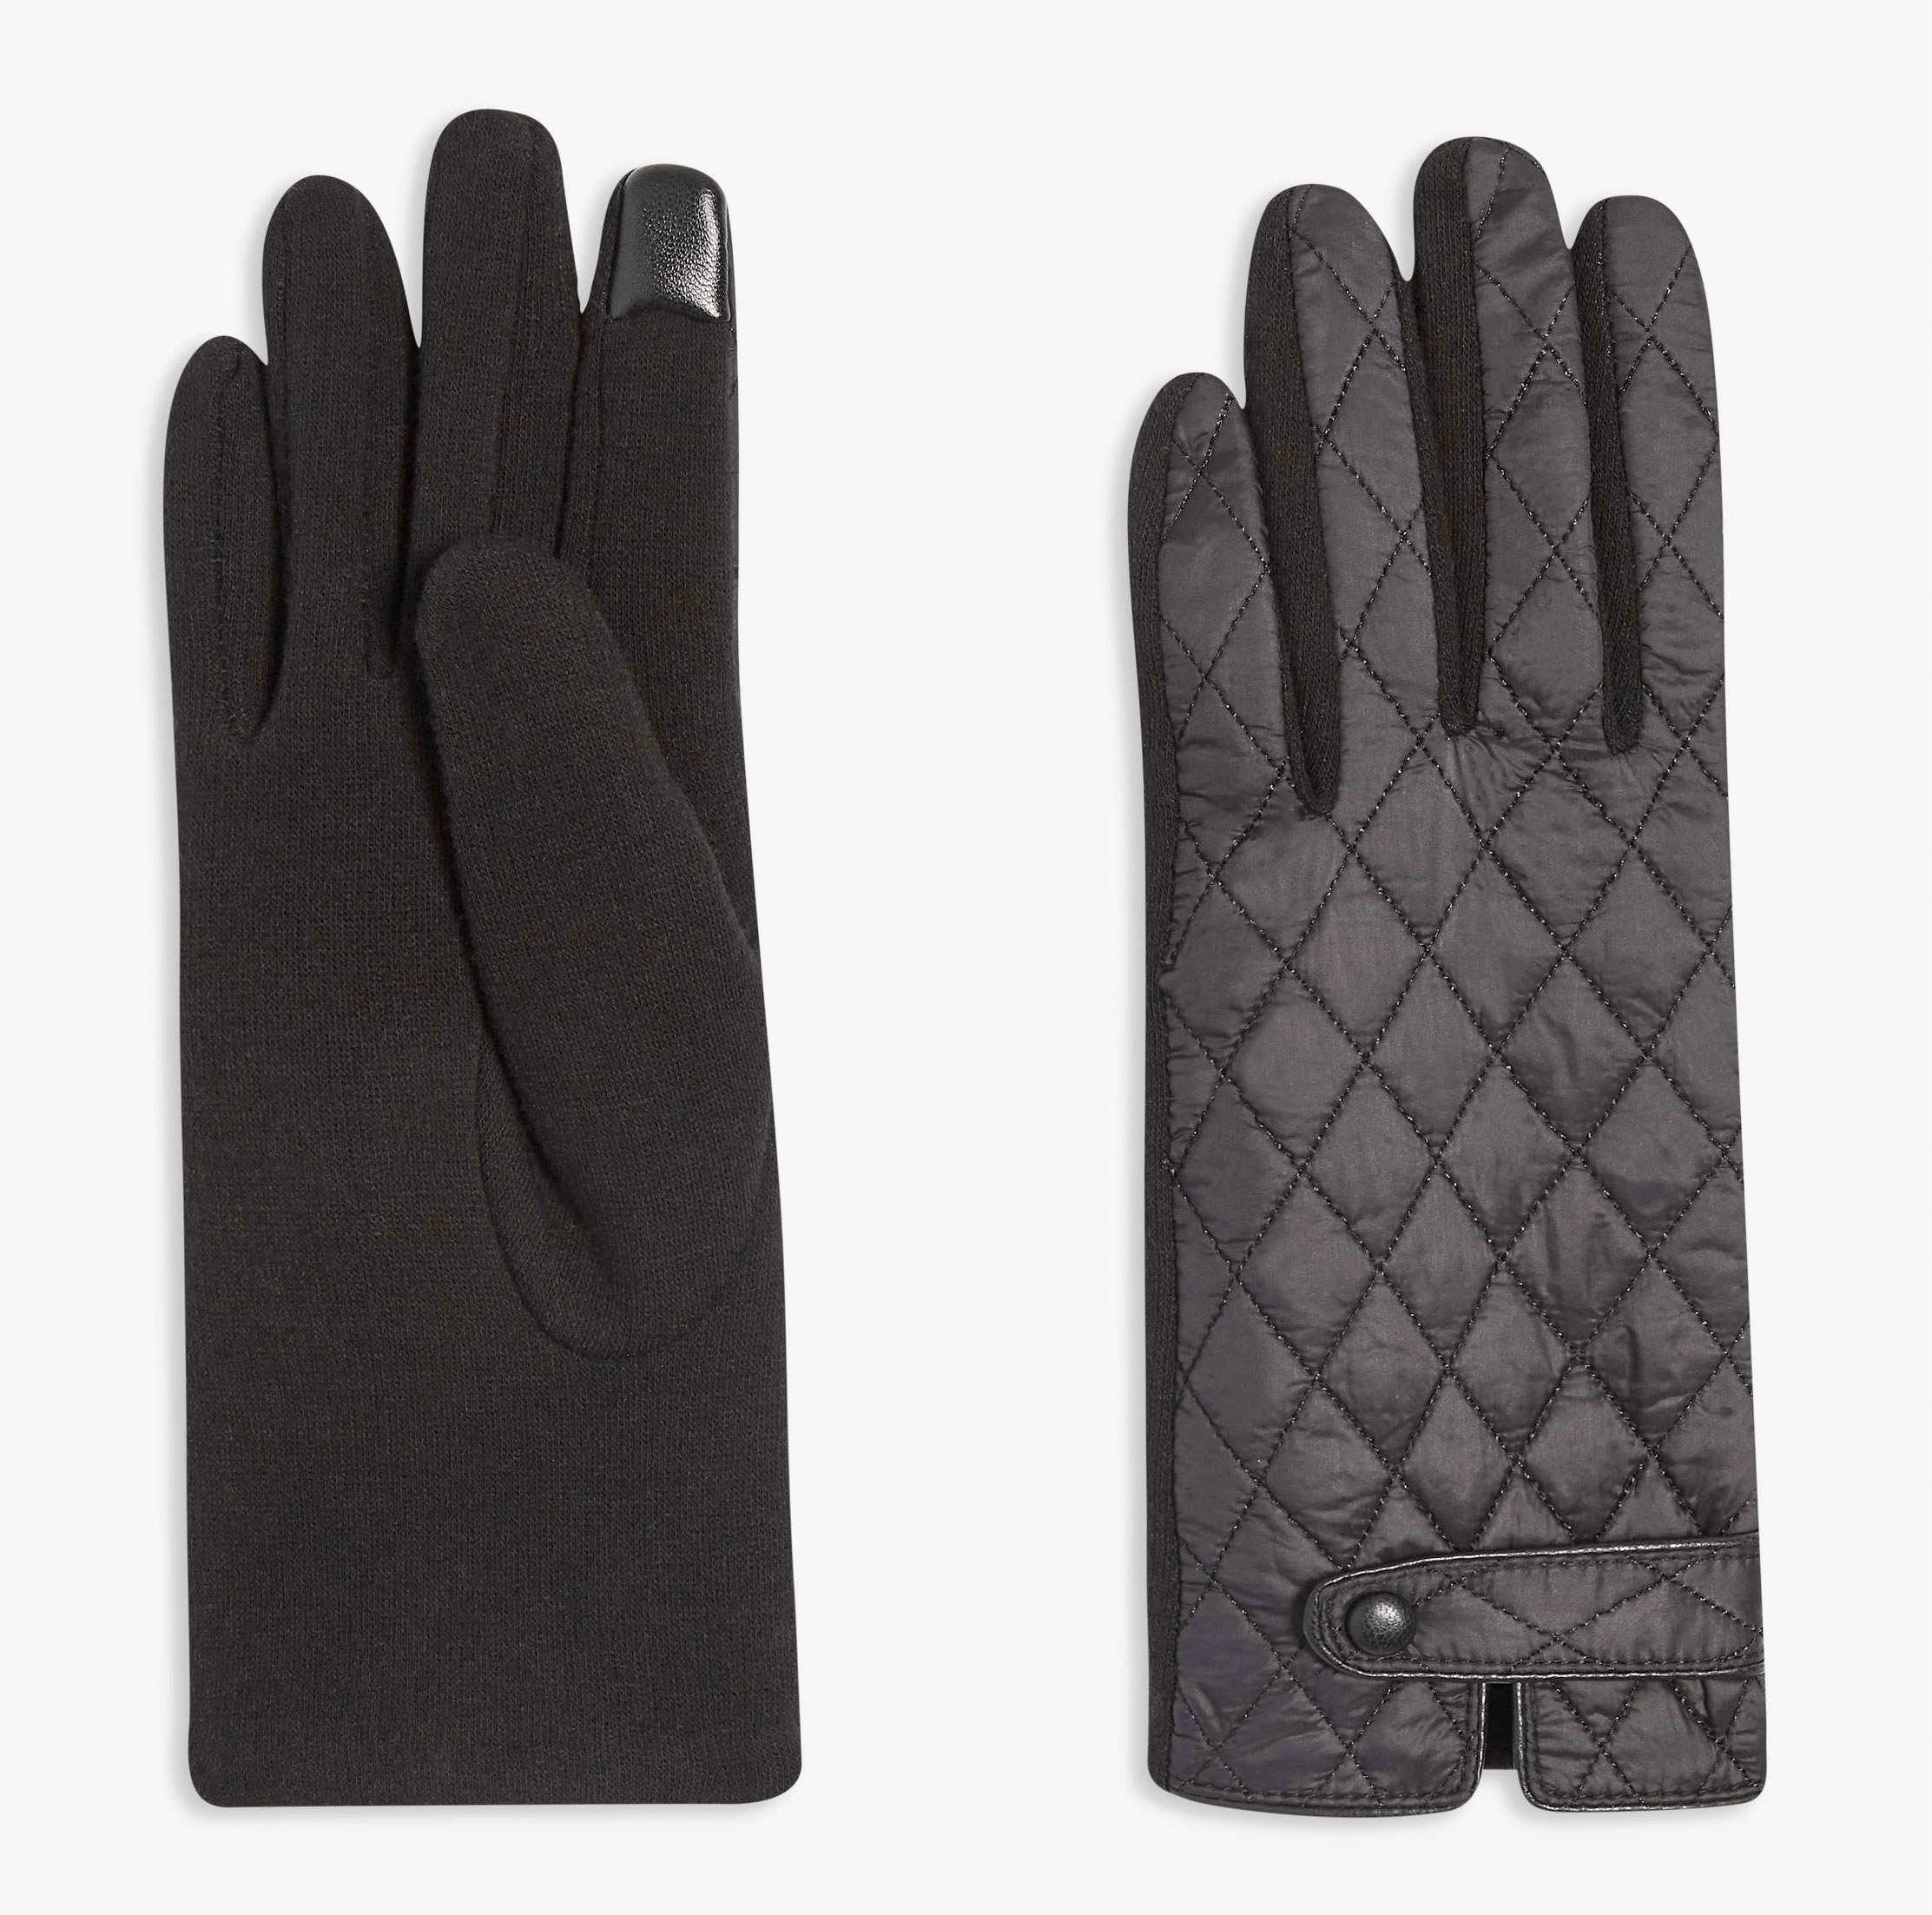 A pair of winter gloves with touchscreen tips on the fingers